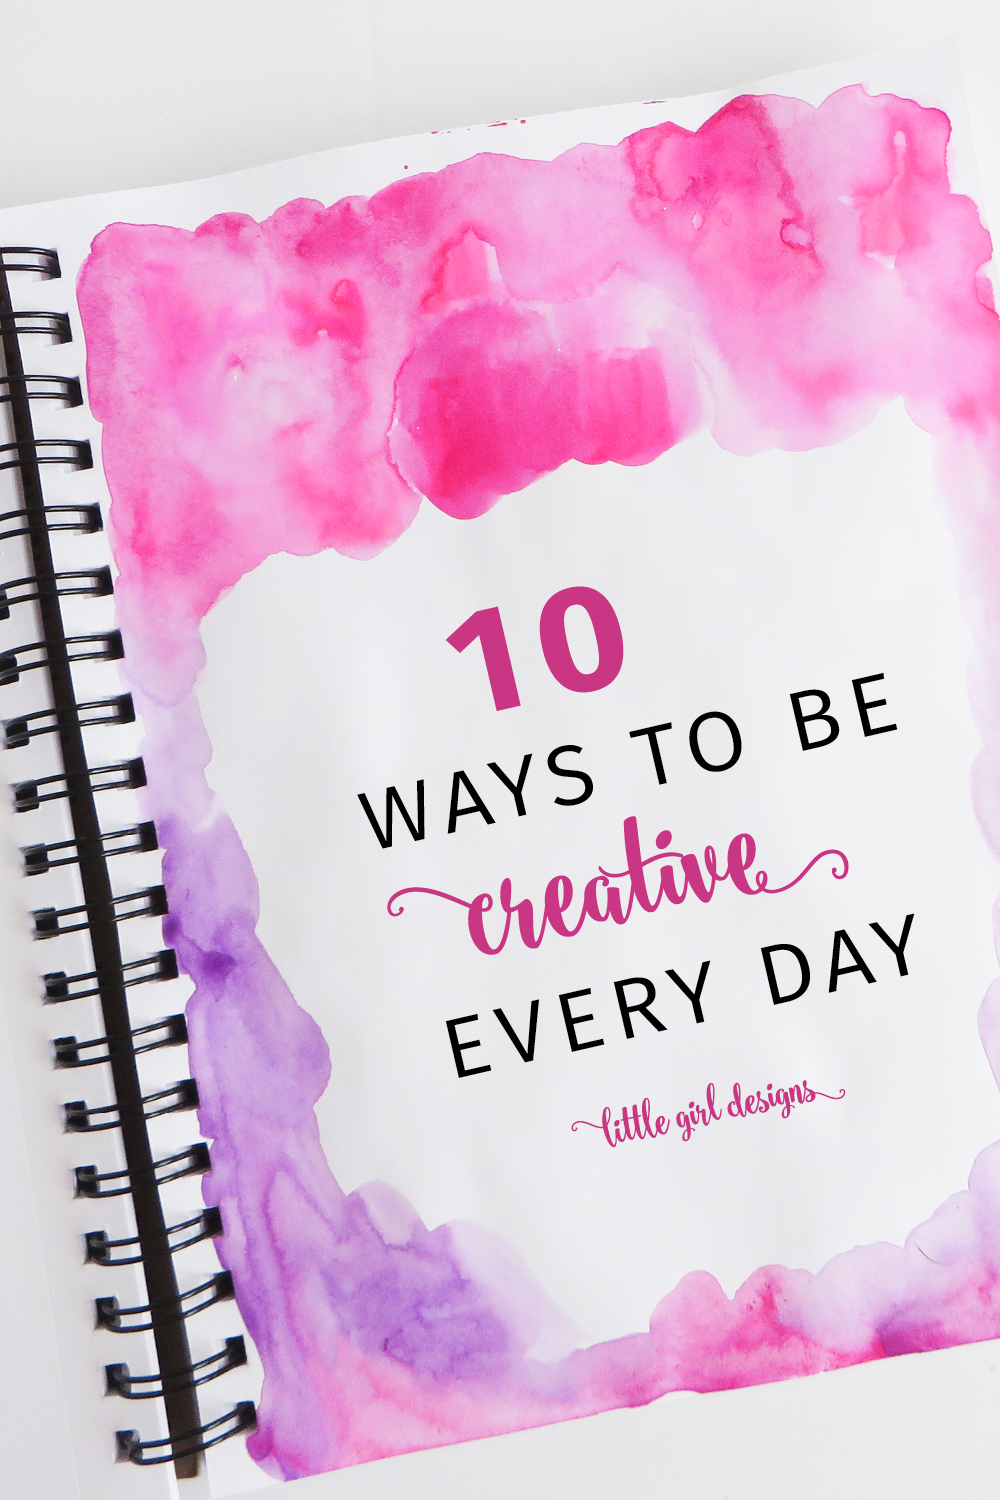 I want to be more creative this year, and am bookmarking this post because I need to hear it daily! I'm taking baby steps to being more creative every day and my family wants to thank you. I do too!